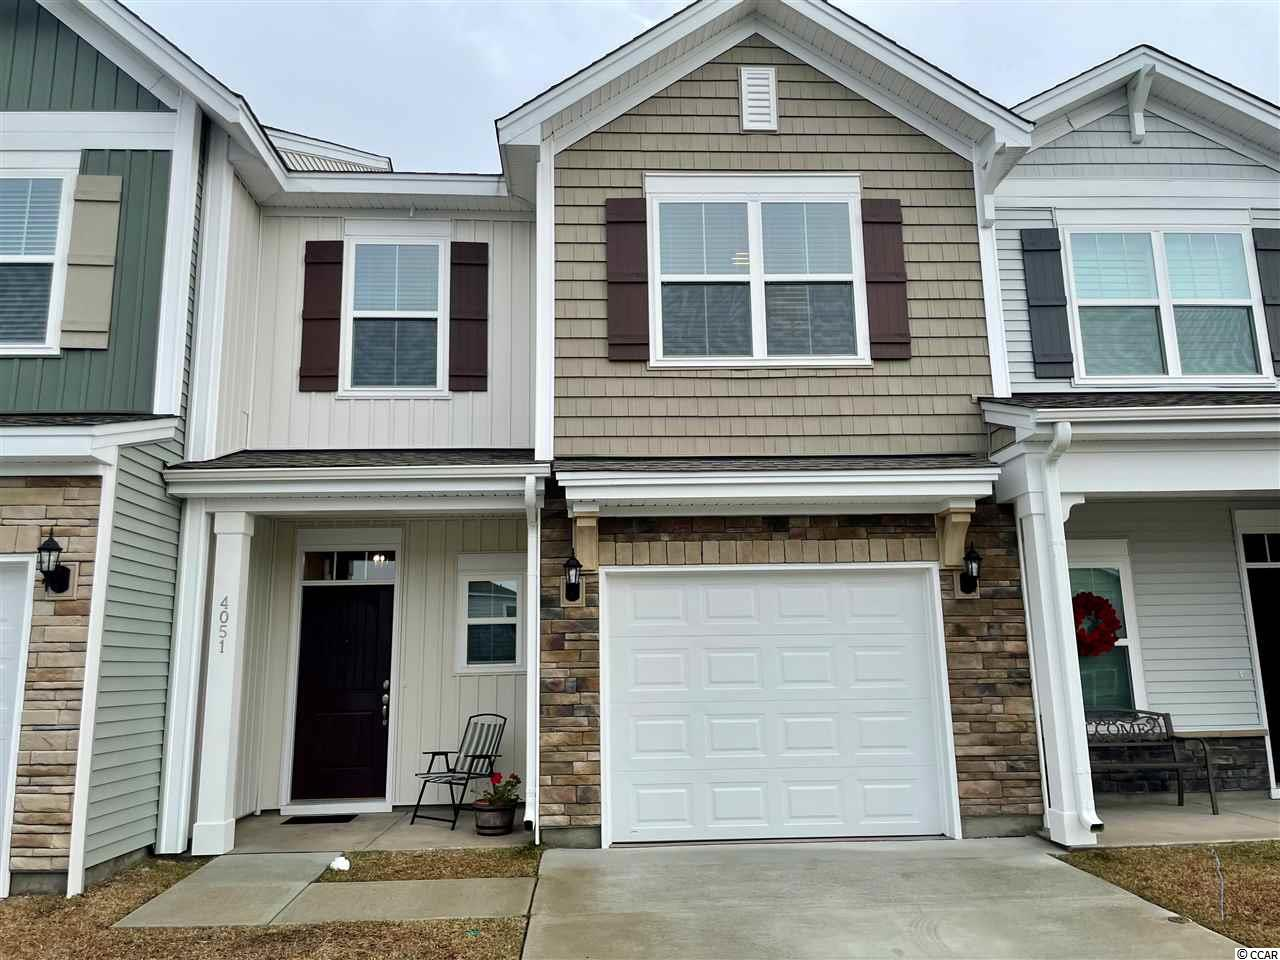 Great opportunity to get a 'like new' town home that is move-in ready in the popular community of Cypress Village.  This floor plan offers the a spacious living room/dining room with an electric fireplace as the centerpiece, a decked out kitchen, and a powder room on the first floor.  It has 2 guest bedrooms upstairs that split a full bath.  This town home also has a huge balcony on the 2nd floor off of the master bedroom which the new construction town homes are not offering.  All stainless steel appliances, washer/dryer, and blinds come with the home as well so you can move right in and start living the good life.  This home is a beauty with too many upgrades to list.  Cypress Village is a natural gas community so this town home comes with a rinnai tankless hot water system, gas heat, and a gas stove.  The HOA Fee covers weekly lawn maintenance, trash and recycling, a resort style pool with a cabana, a fitness center, a lounge area in the clubhouse, bocchi ball courts, and tennis courts.  This one won't last long!